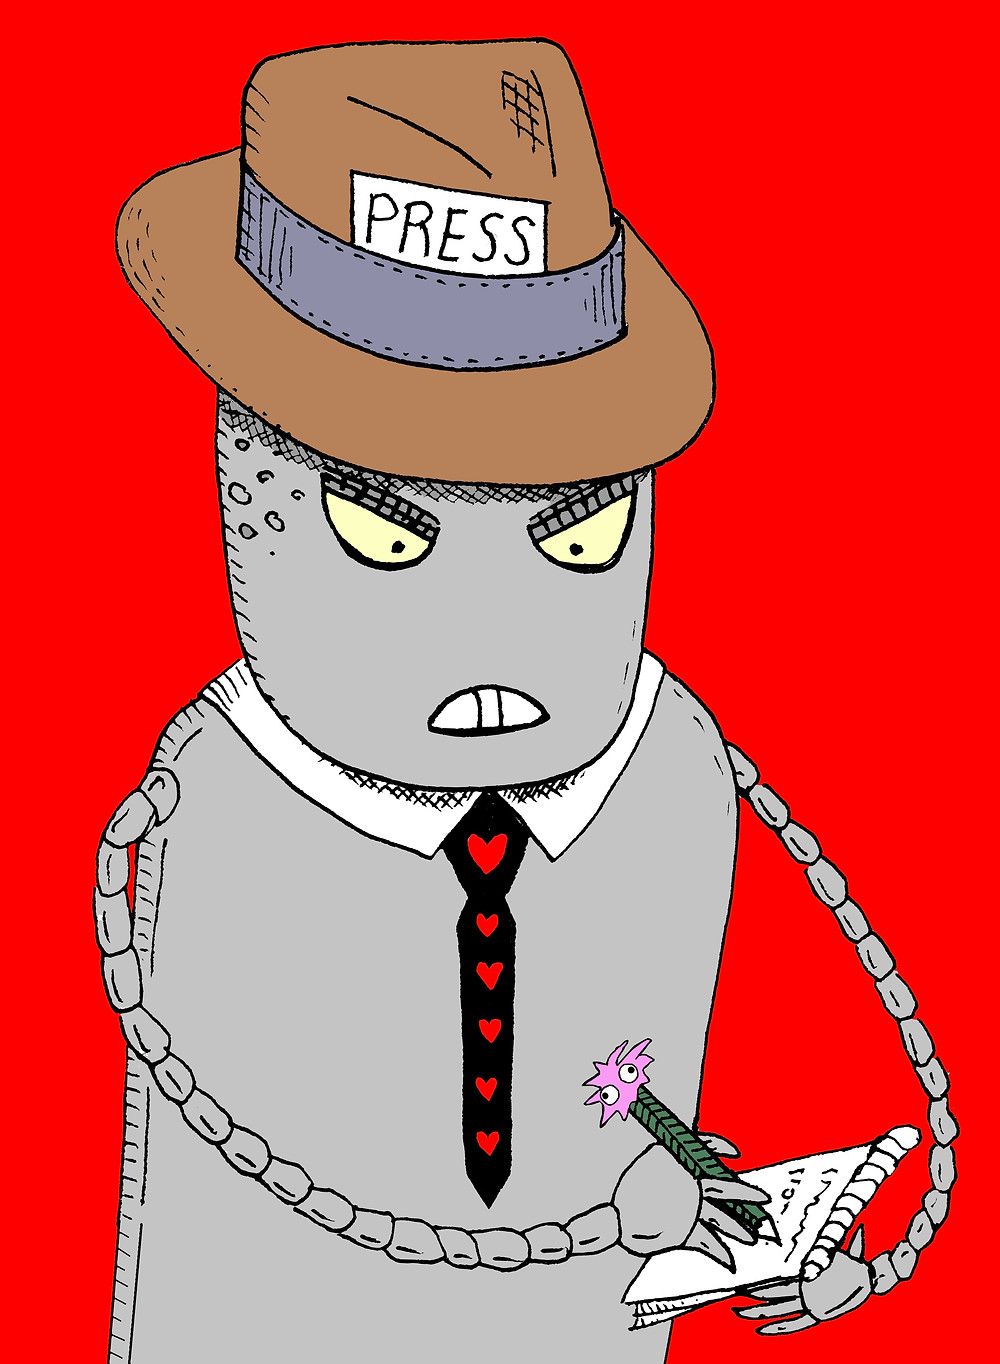 Sergeant Megatron 5000 dressed as a reporter with a hat and notepad